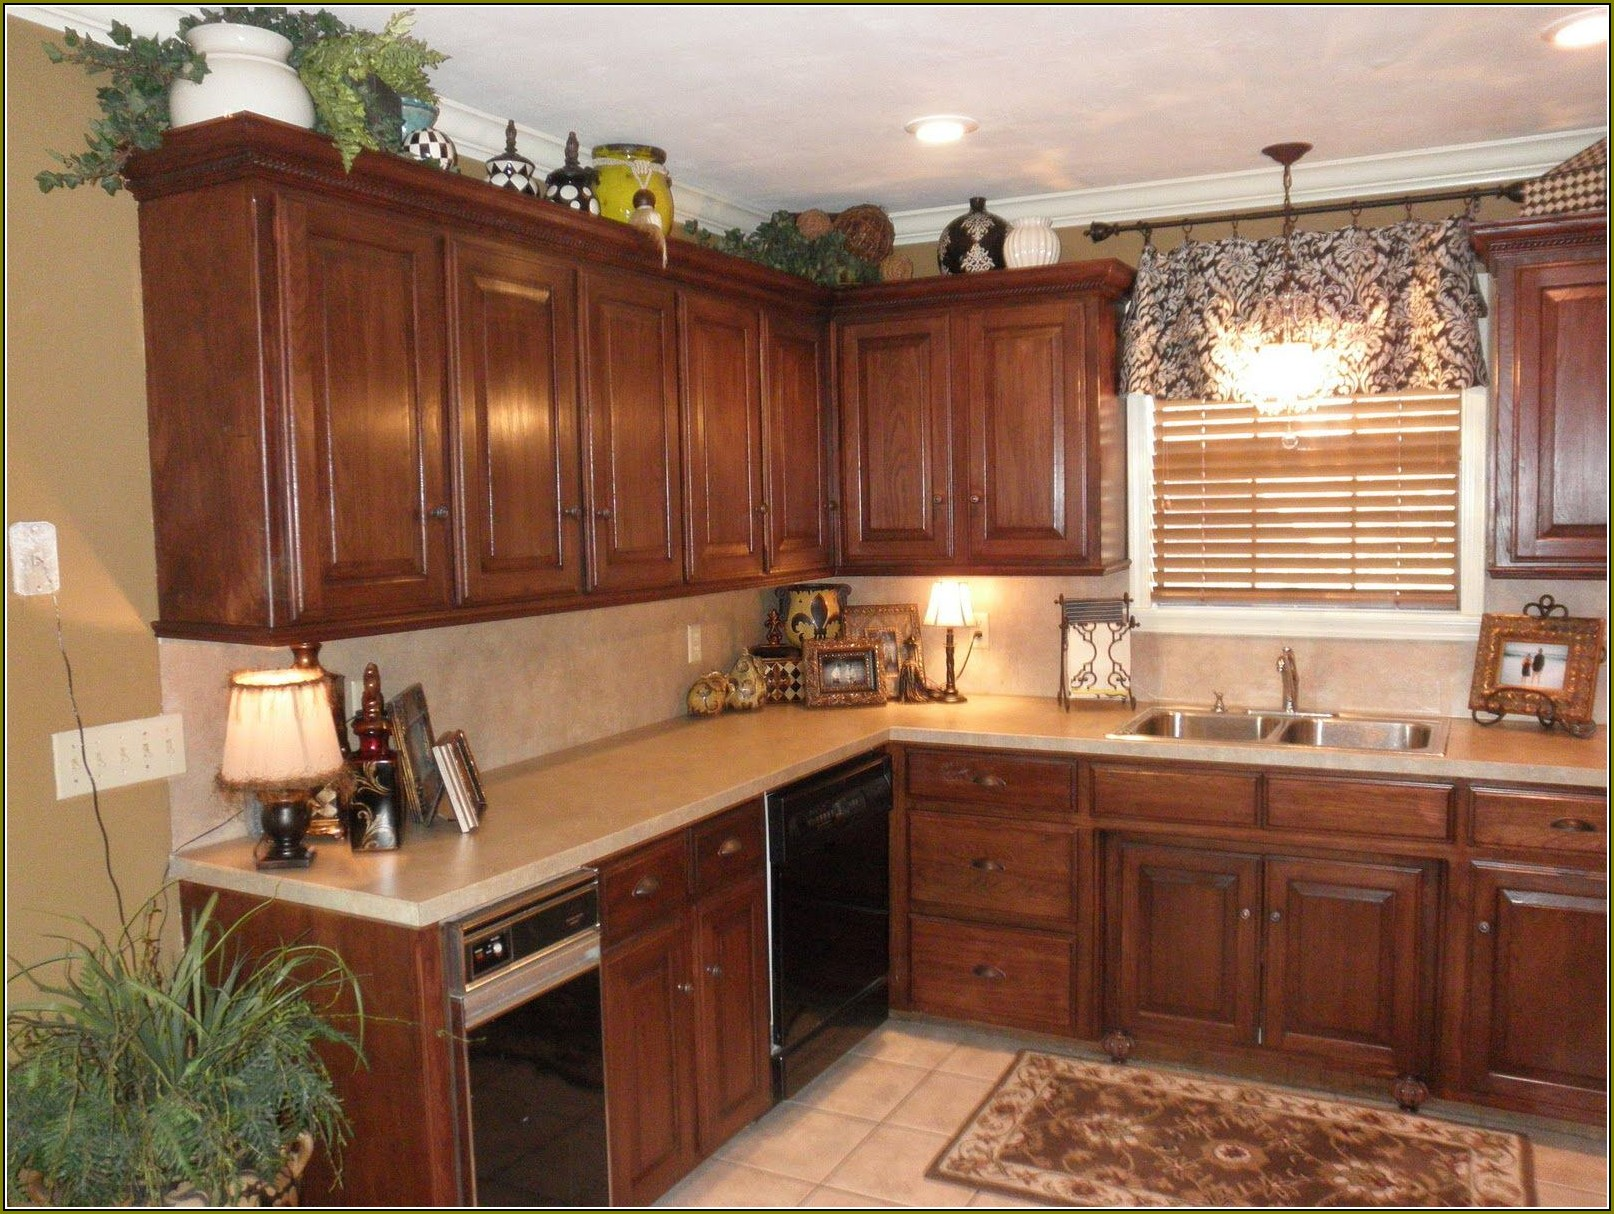 Kitchen Cabinets Crown Molding Ideas - Kitchen cabinets molding ideas